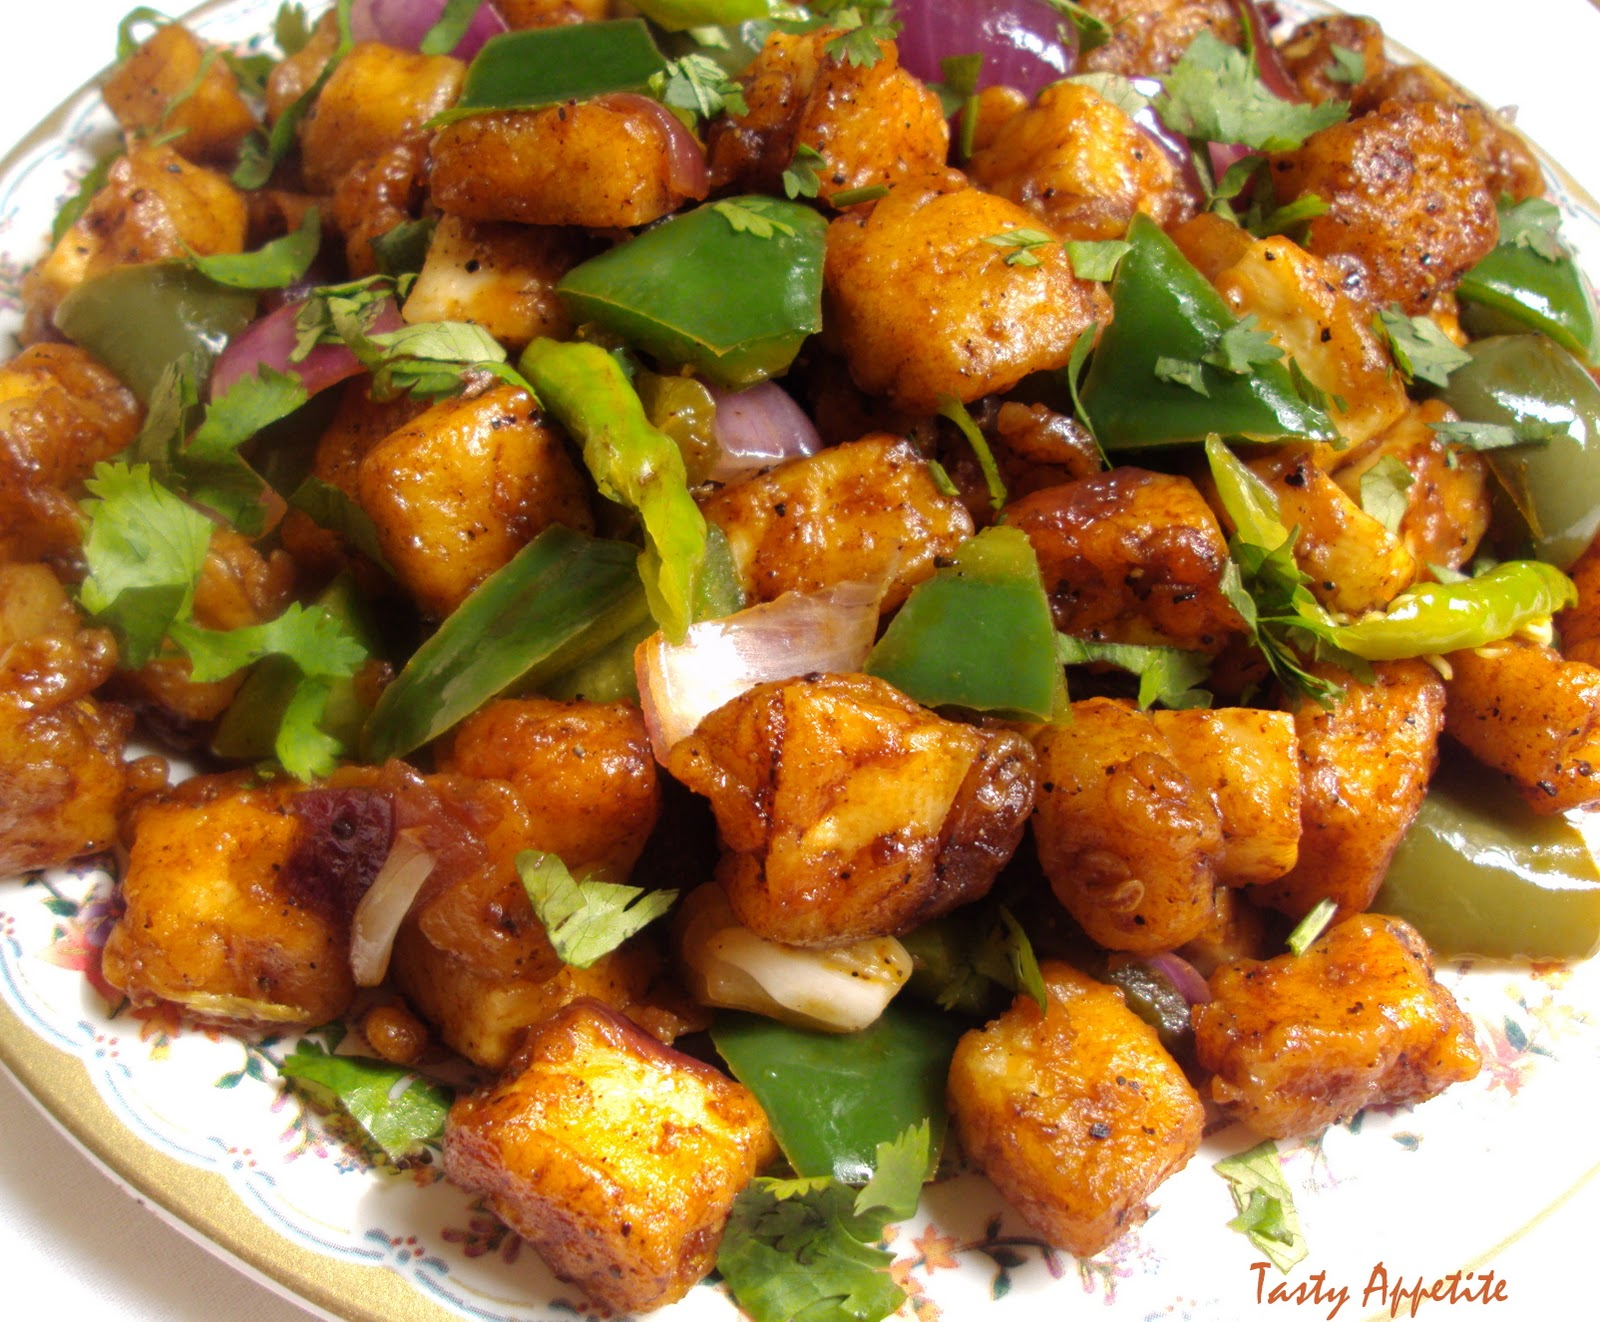 Chilly paneer dry merry christmas chilly paneer dry merry christmas forumfinder Image collections